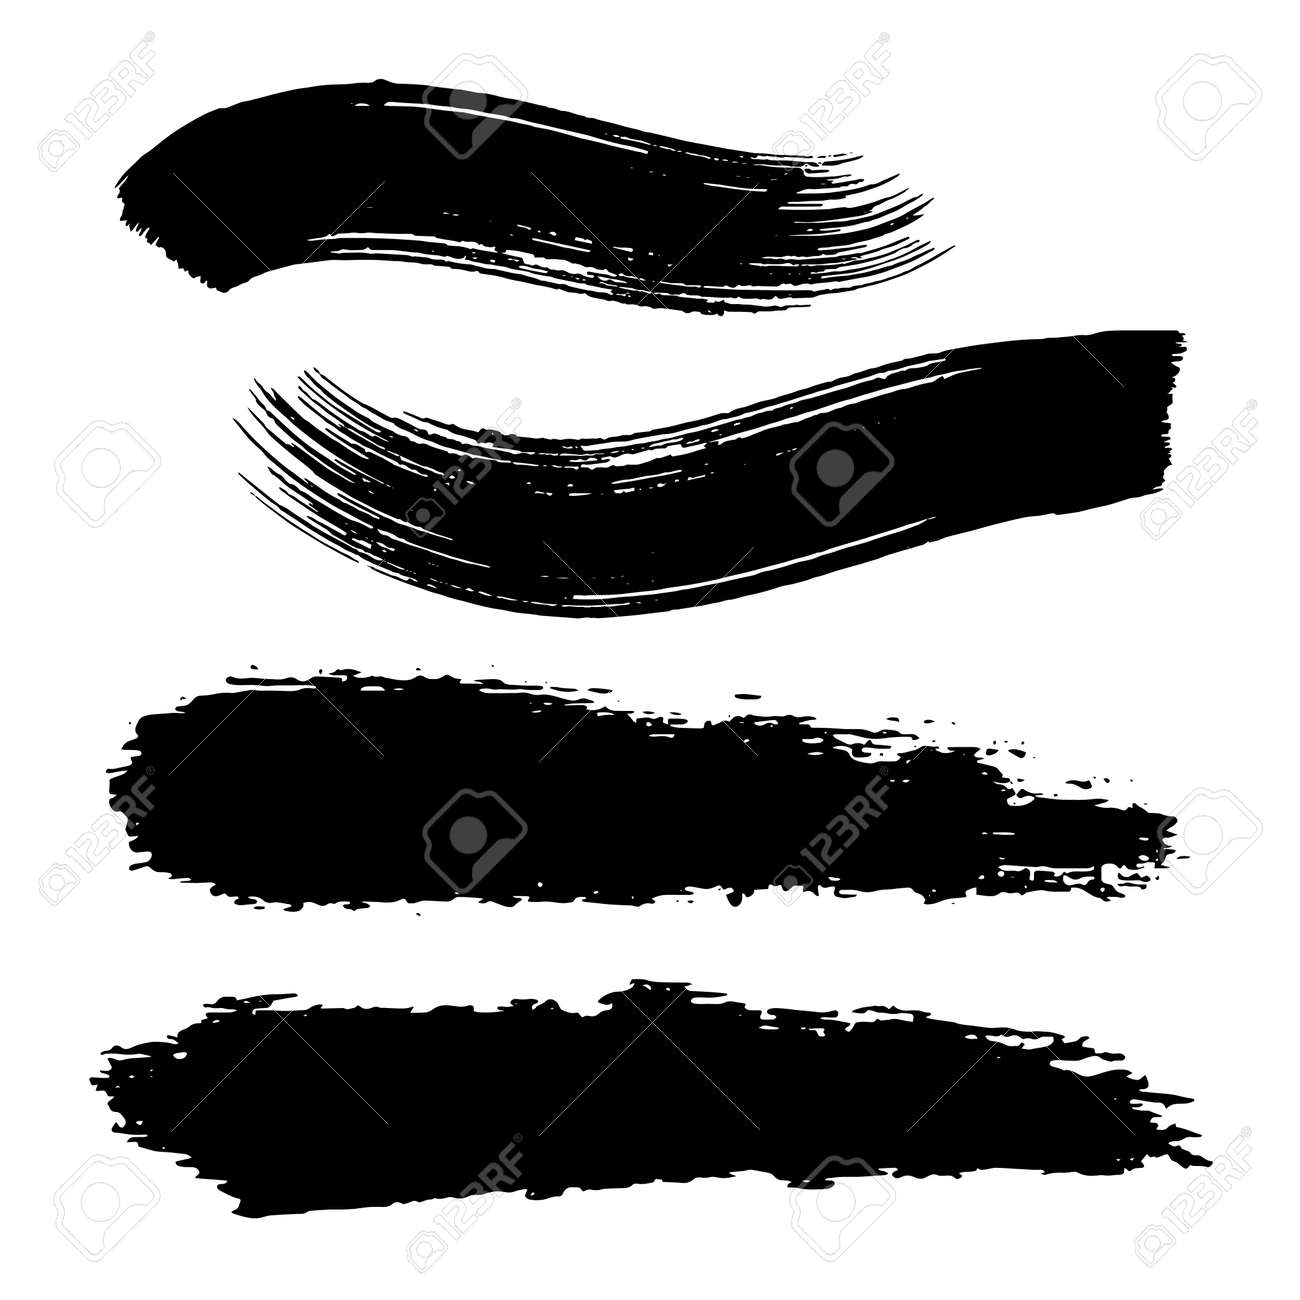 Vector black paint, ink brush stroke, brush, line or texture. Dirty artistic design element, box, frame or background for text. - 152031454